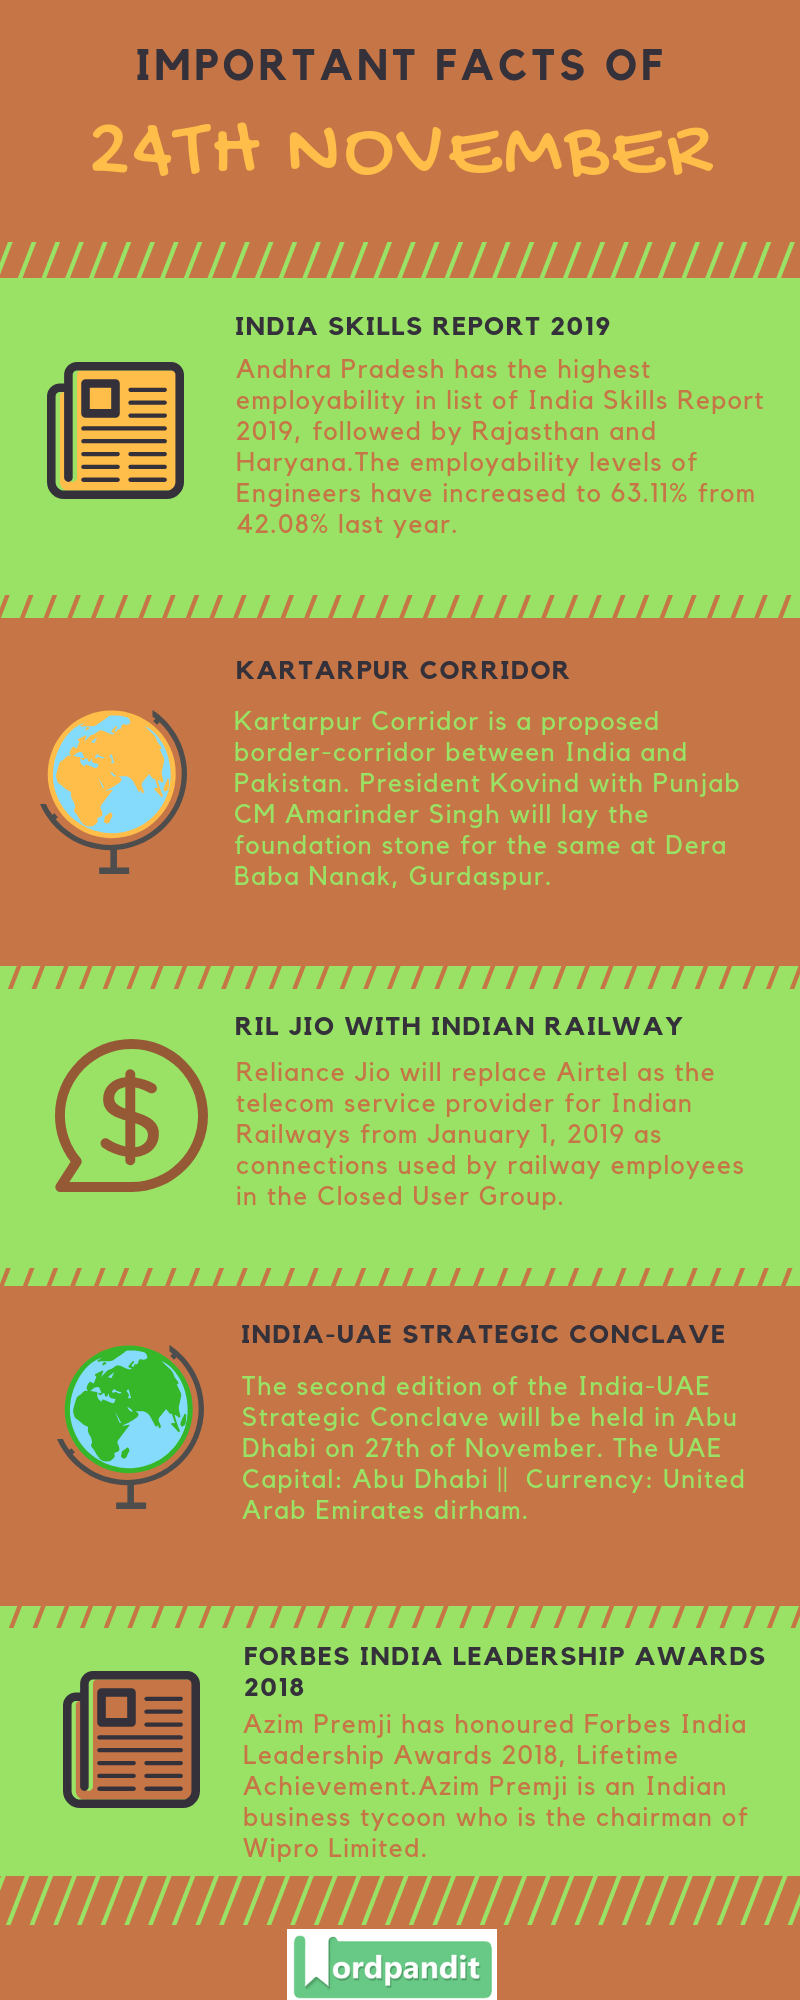 Daily Current Affairs 24 November 2018 Current Affairs Quiz 24 November 2018 Current Affairs Infographic